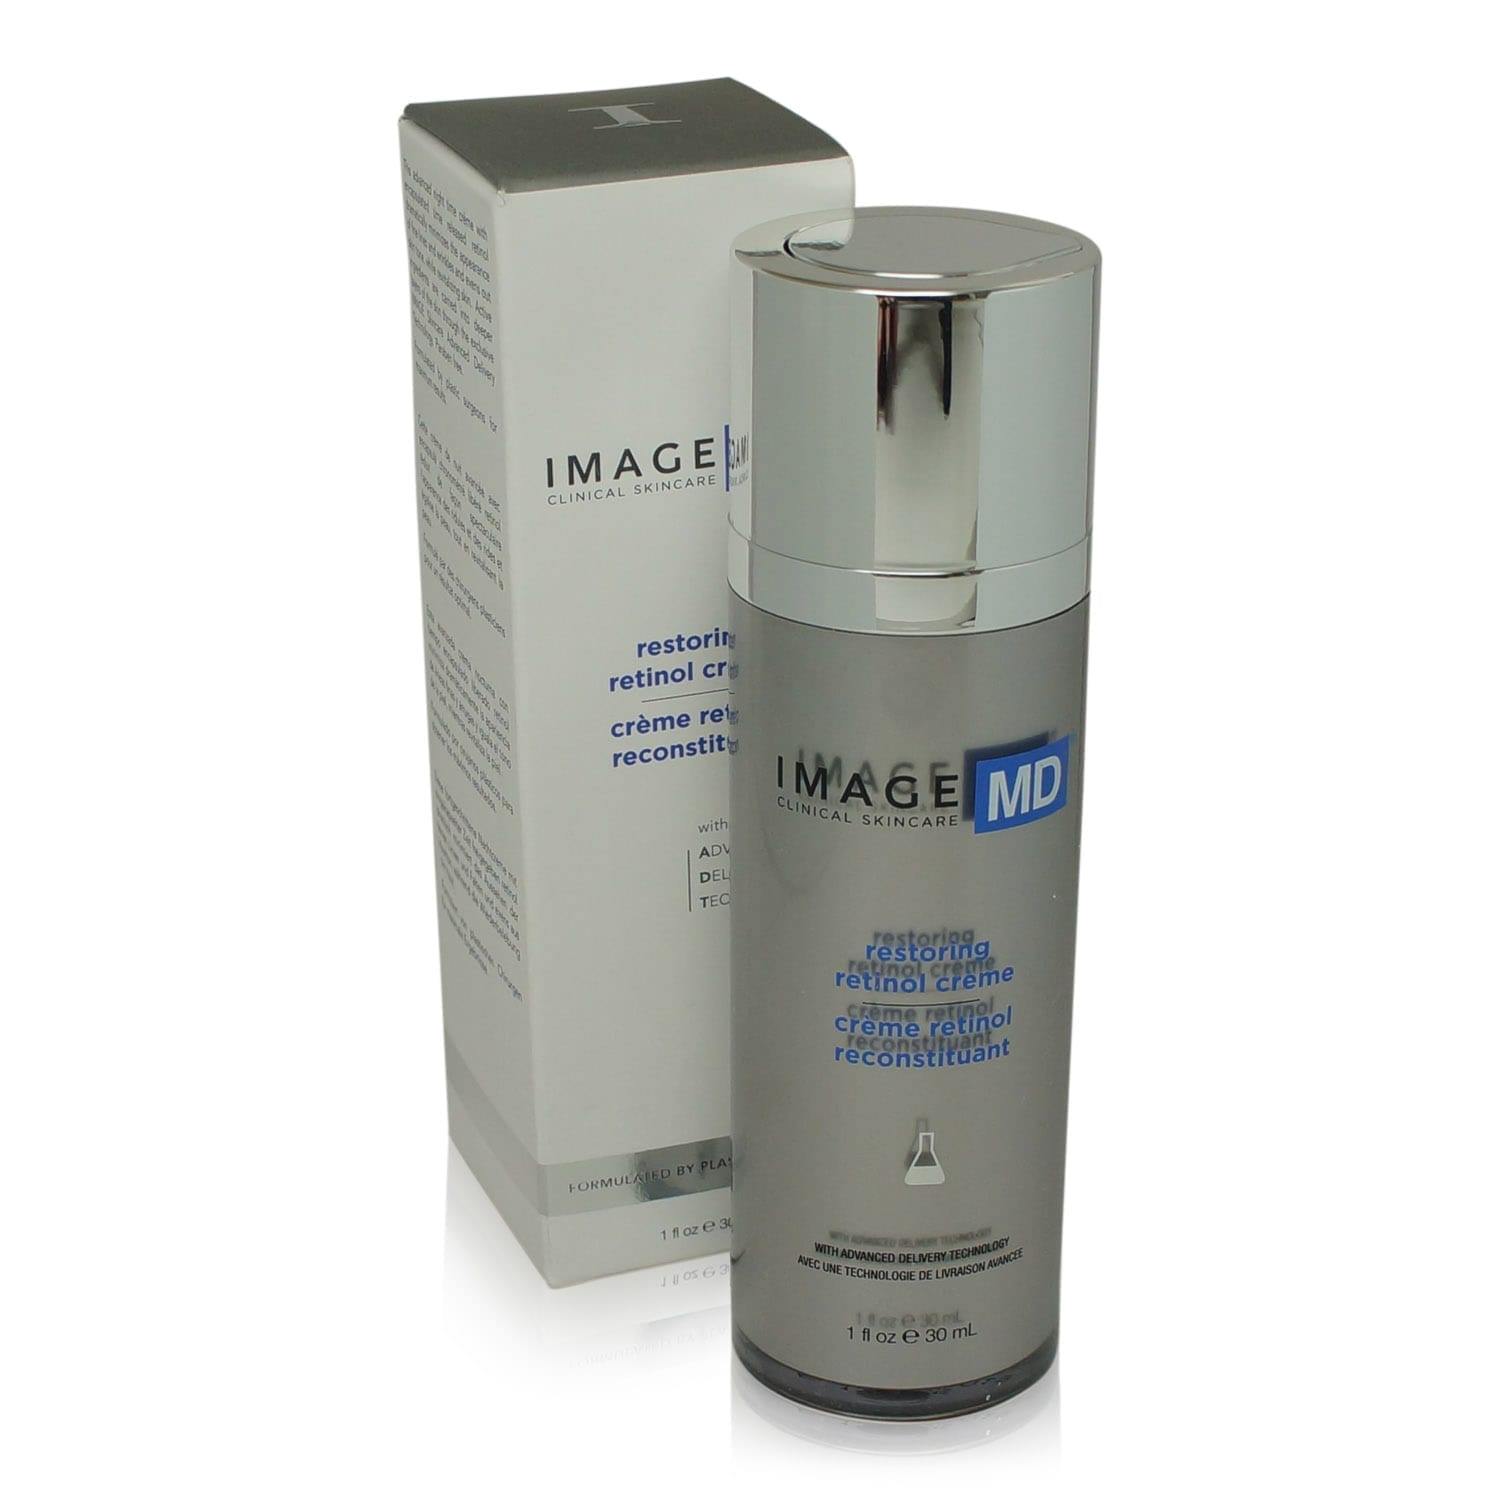 IMAGE Skincare MD Restoring Retinol Creme with ADT Technology 1 oz. bottle front view with box